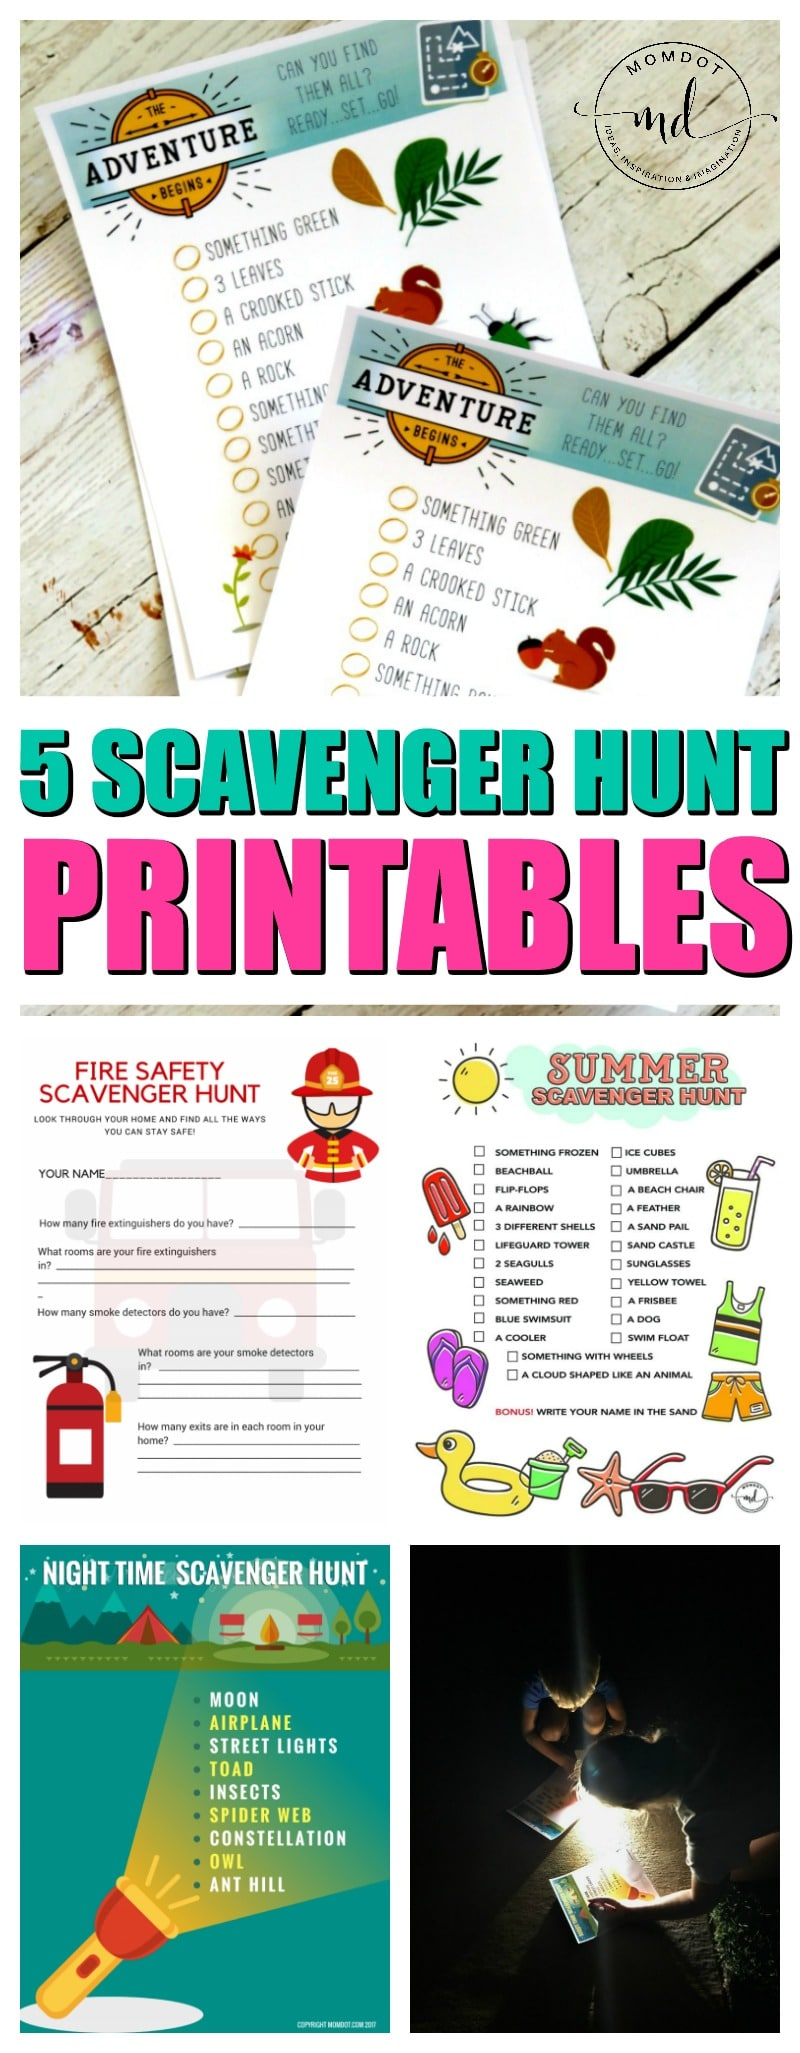 5 scavenger hunt ideas for kids with free printable sheets